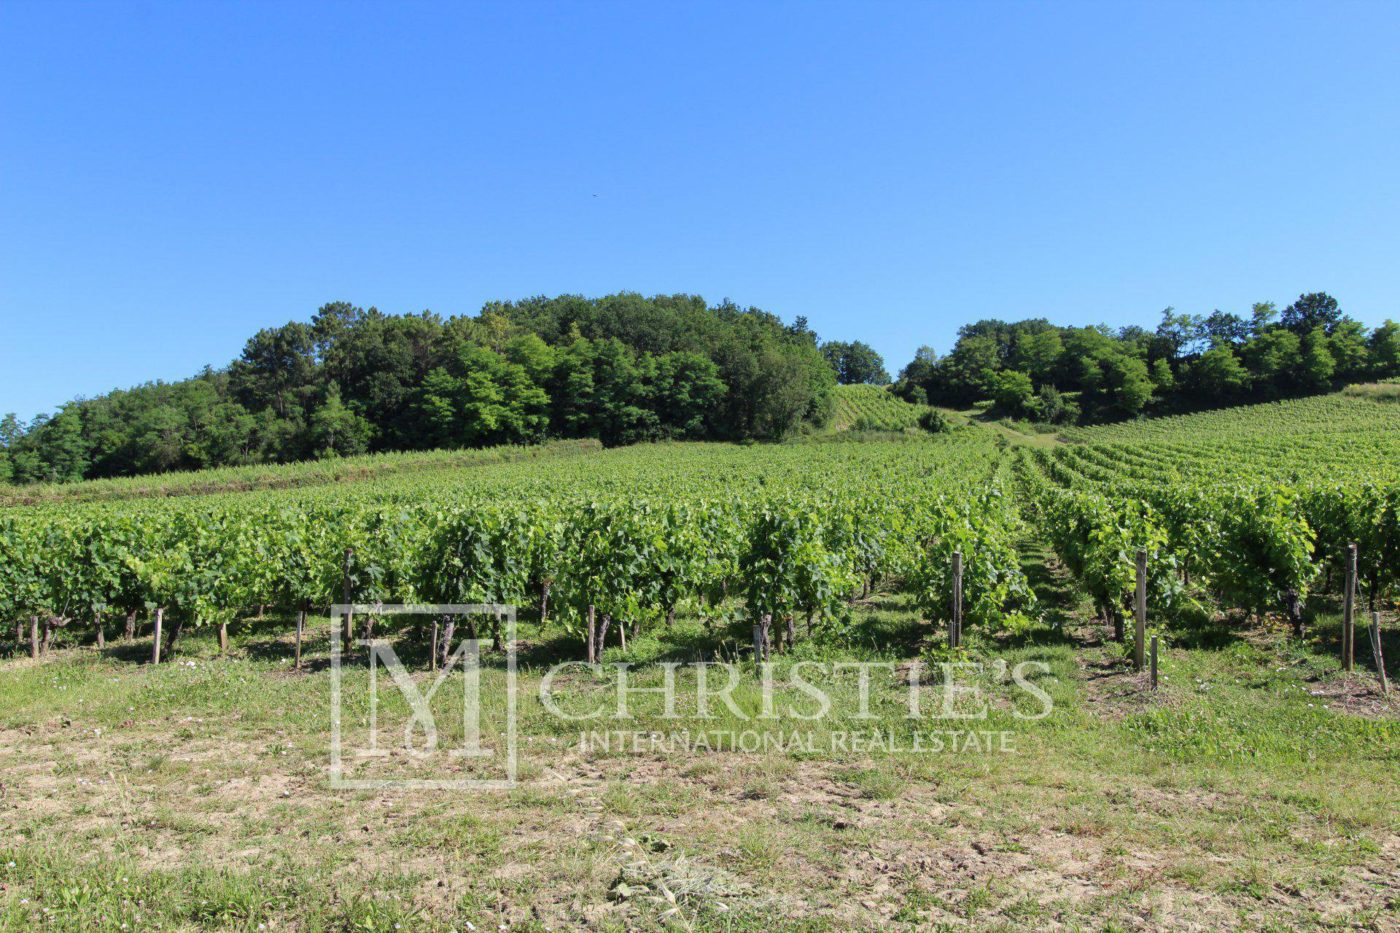 Highly rated turnkey vineyard estate in AOC Cotes de Bordeaux